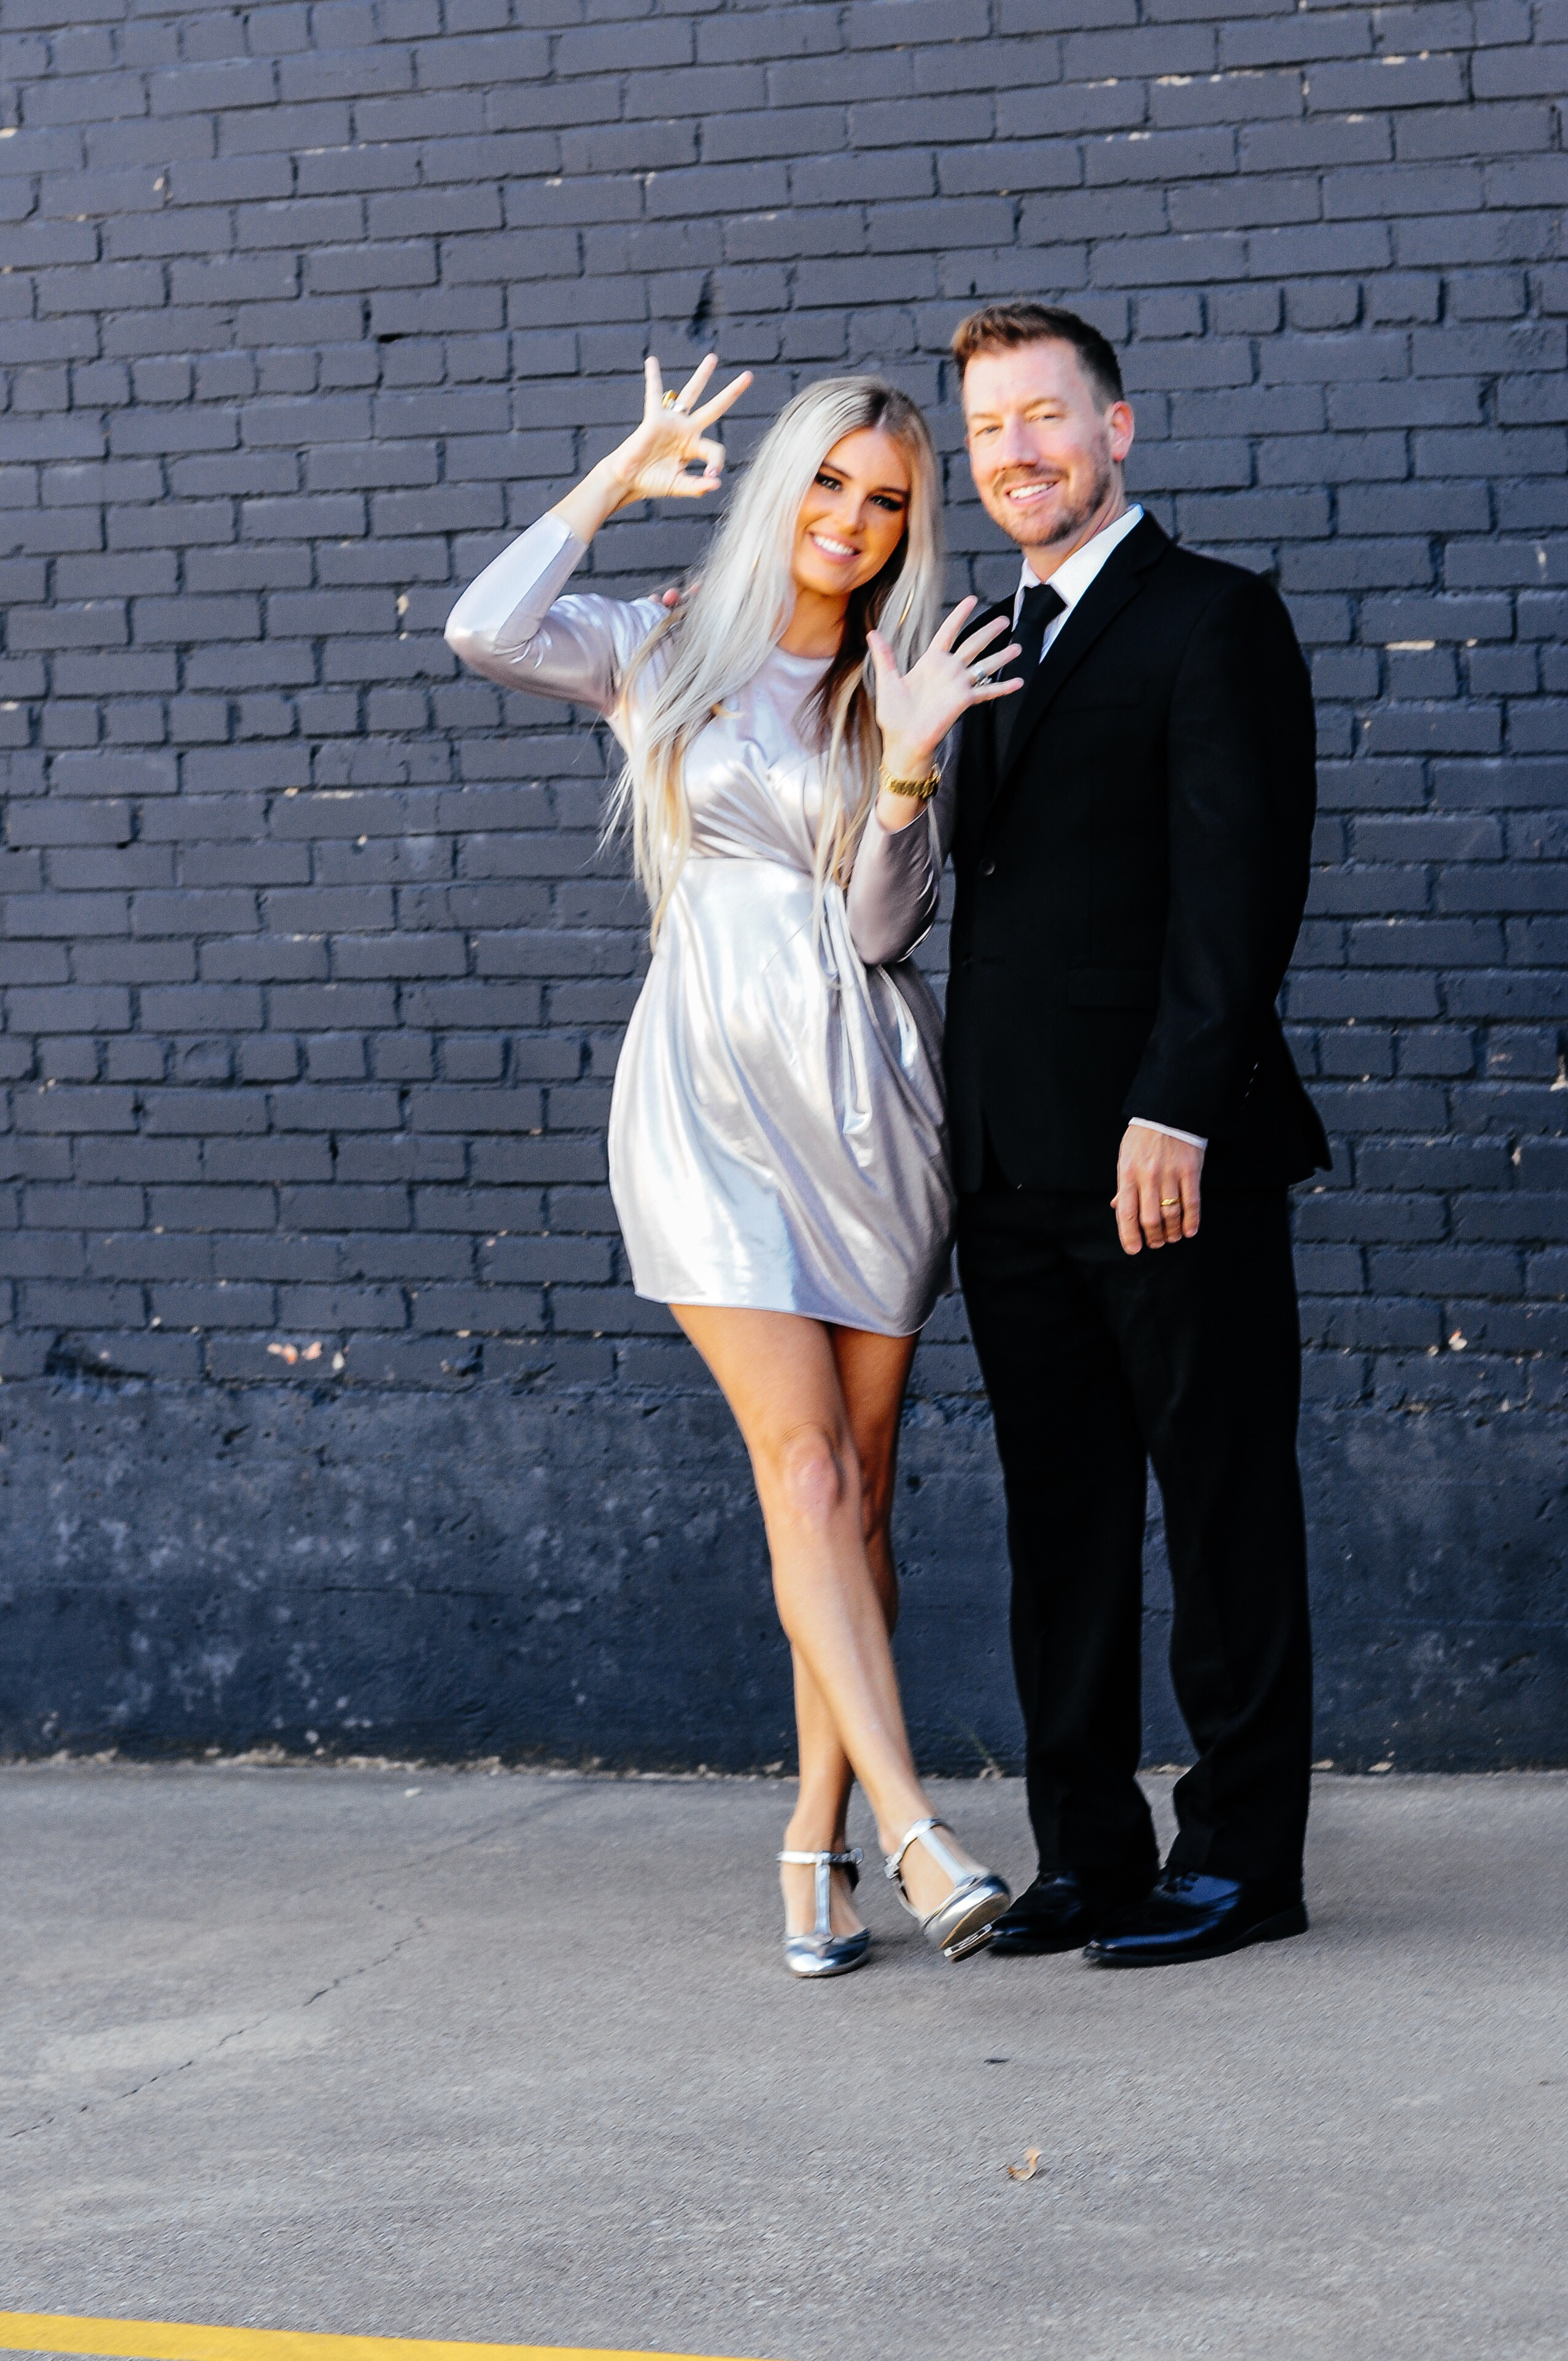 Stephany Bowman, Editor of Stephany's Choice wearing a silver metallic ZARA dress from the Fall/ Winter 2017 collection, TopShop silver heels. Michael Bowman wearing black suit , tie, white shirt and shoes from Nordstrom